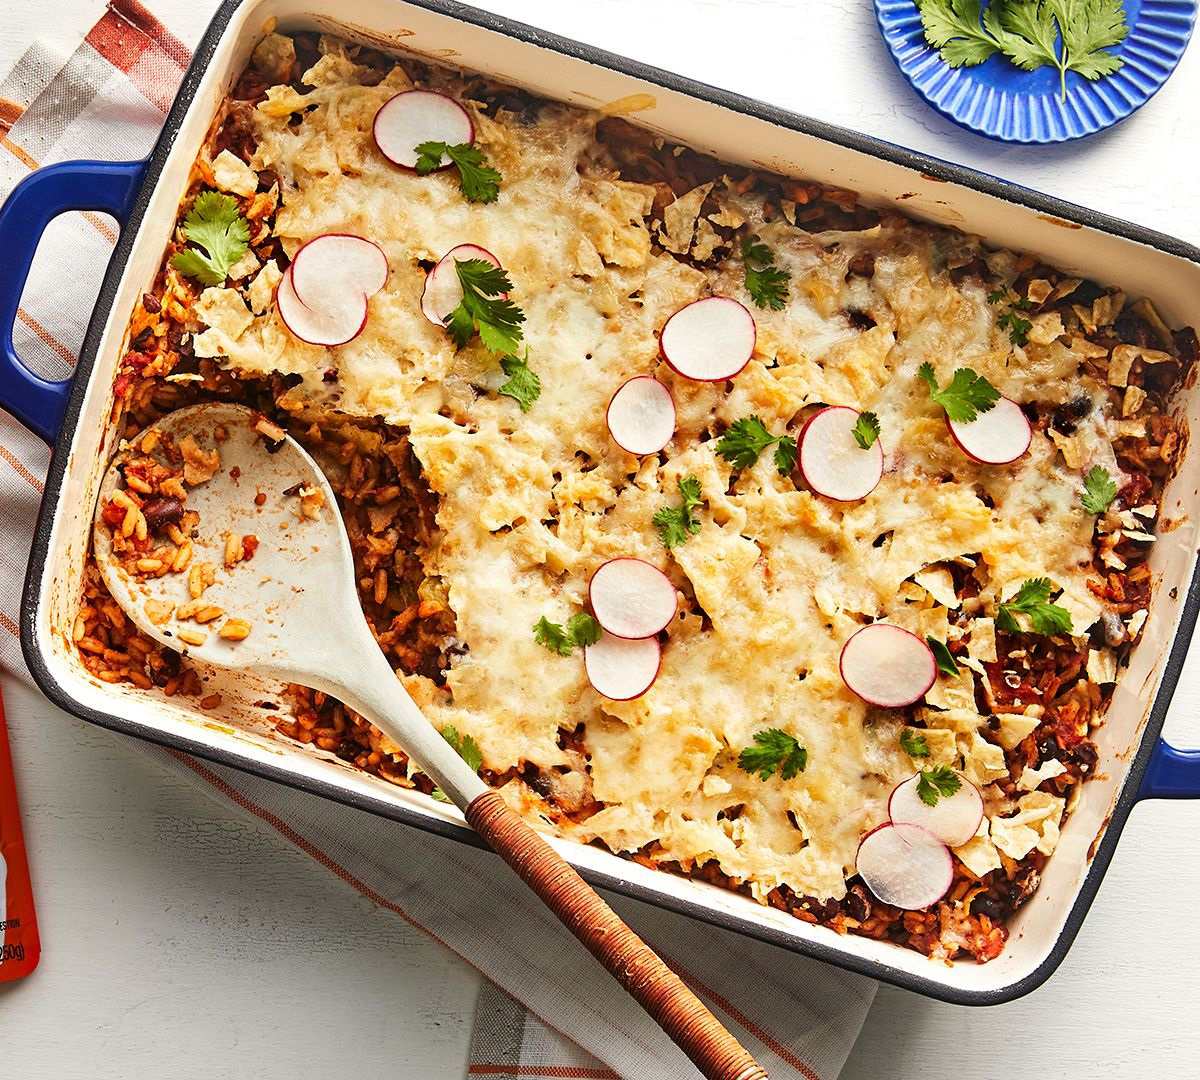 Vegetarian Mexican Casserole Uncle Ben's